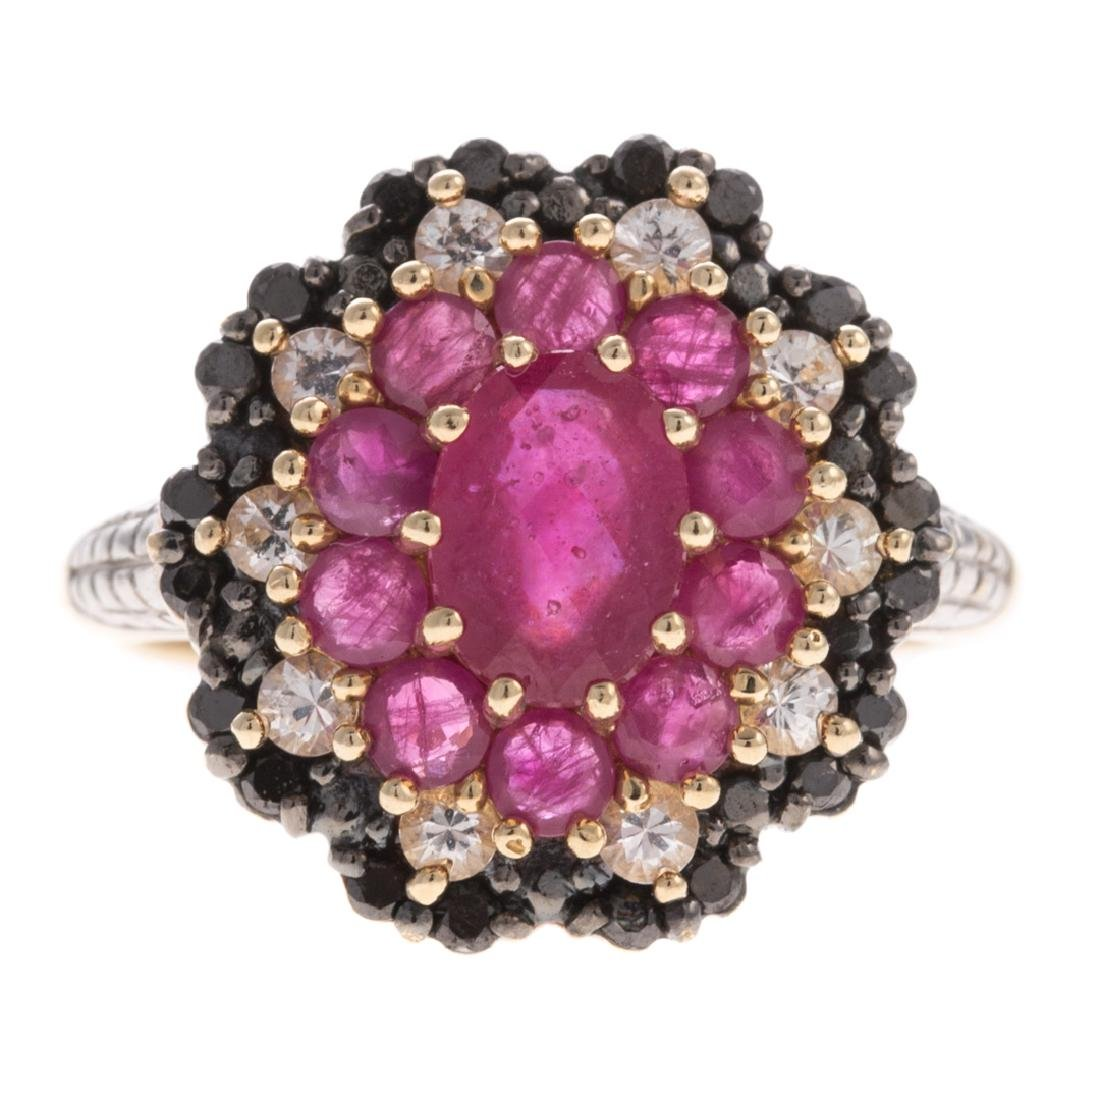 A Lady's Diamond & Ruby Ring in 10K